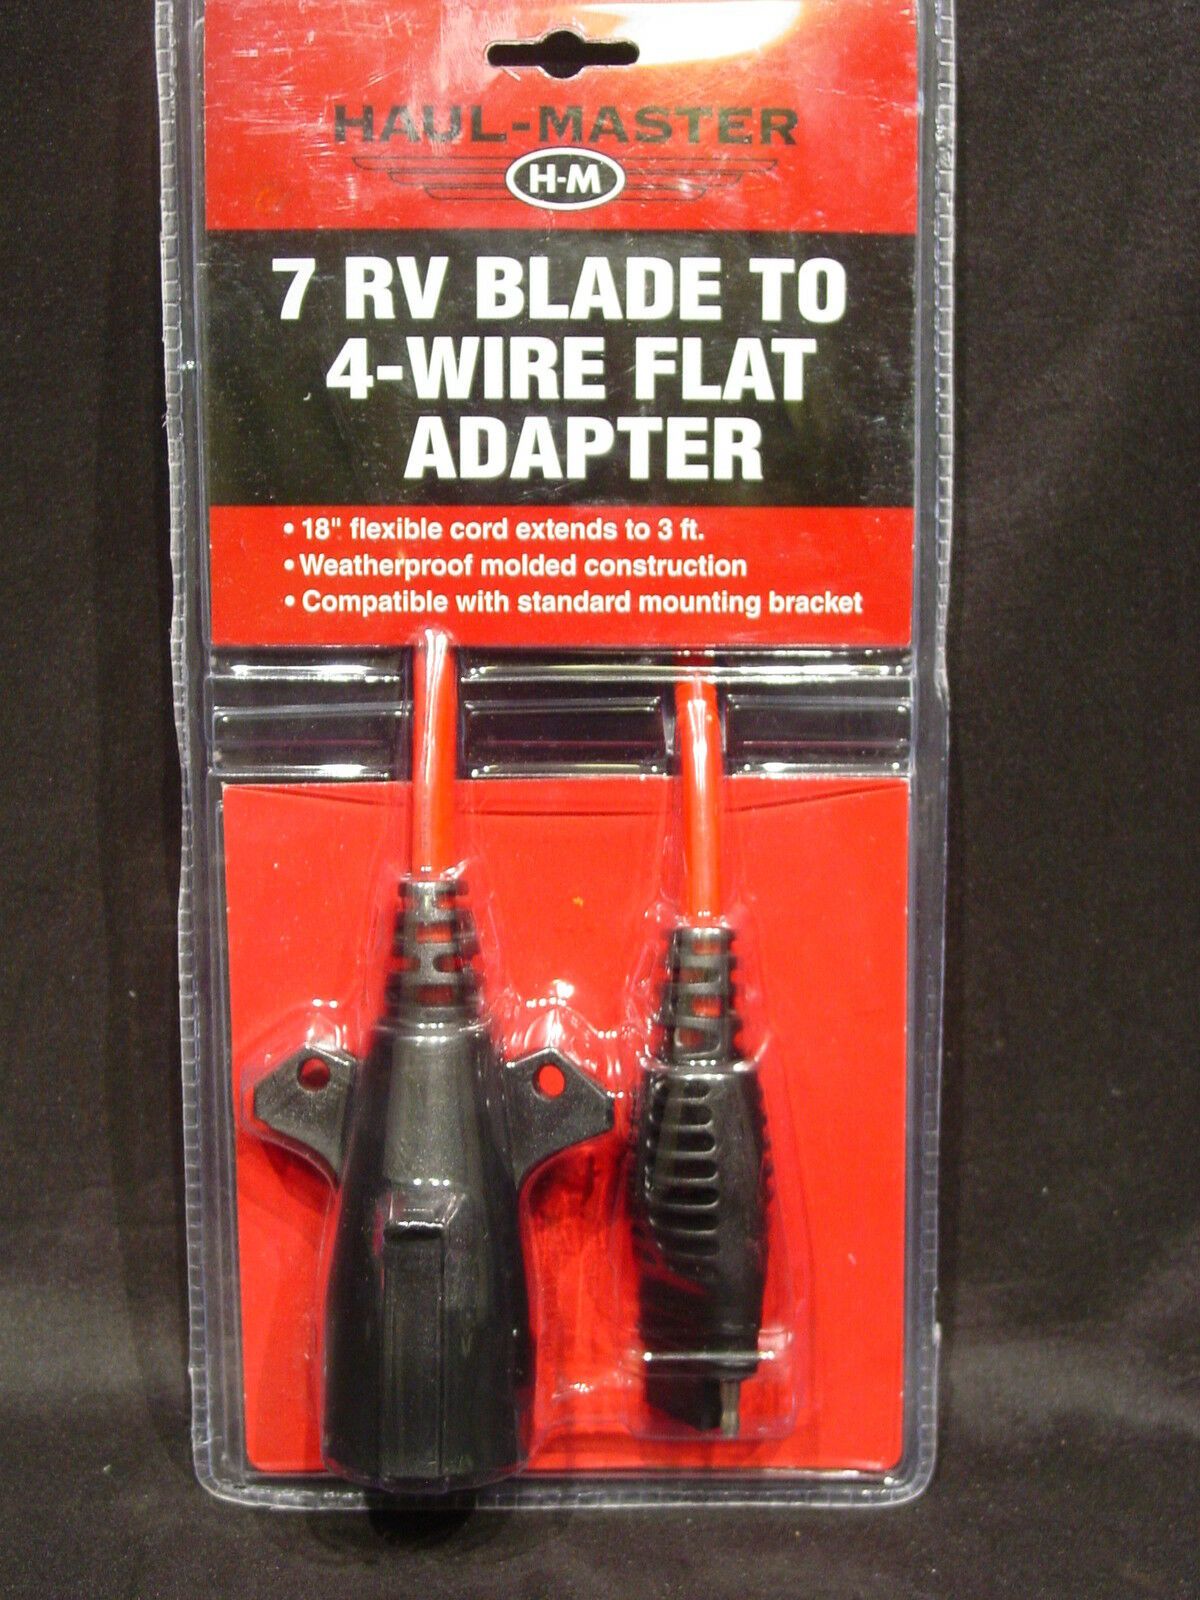 Trailer Wiring Adapter 7 Rv Blade Round To 4 Wire Flat 3 Extension Hopkins Adapters Cord Towing 1 Of 12free Shipping